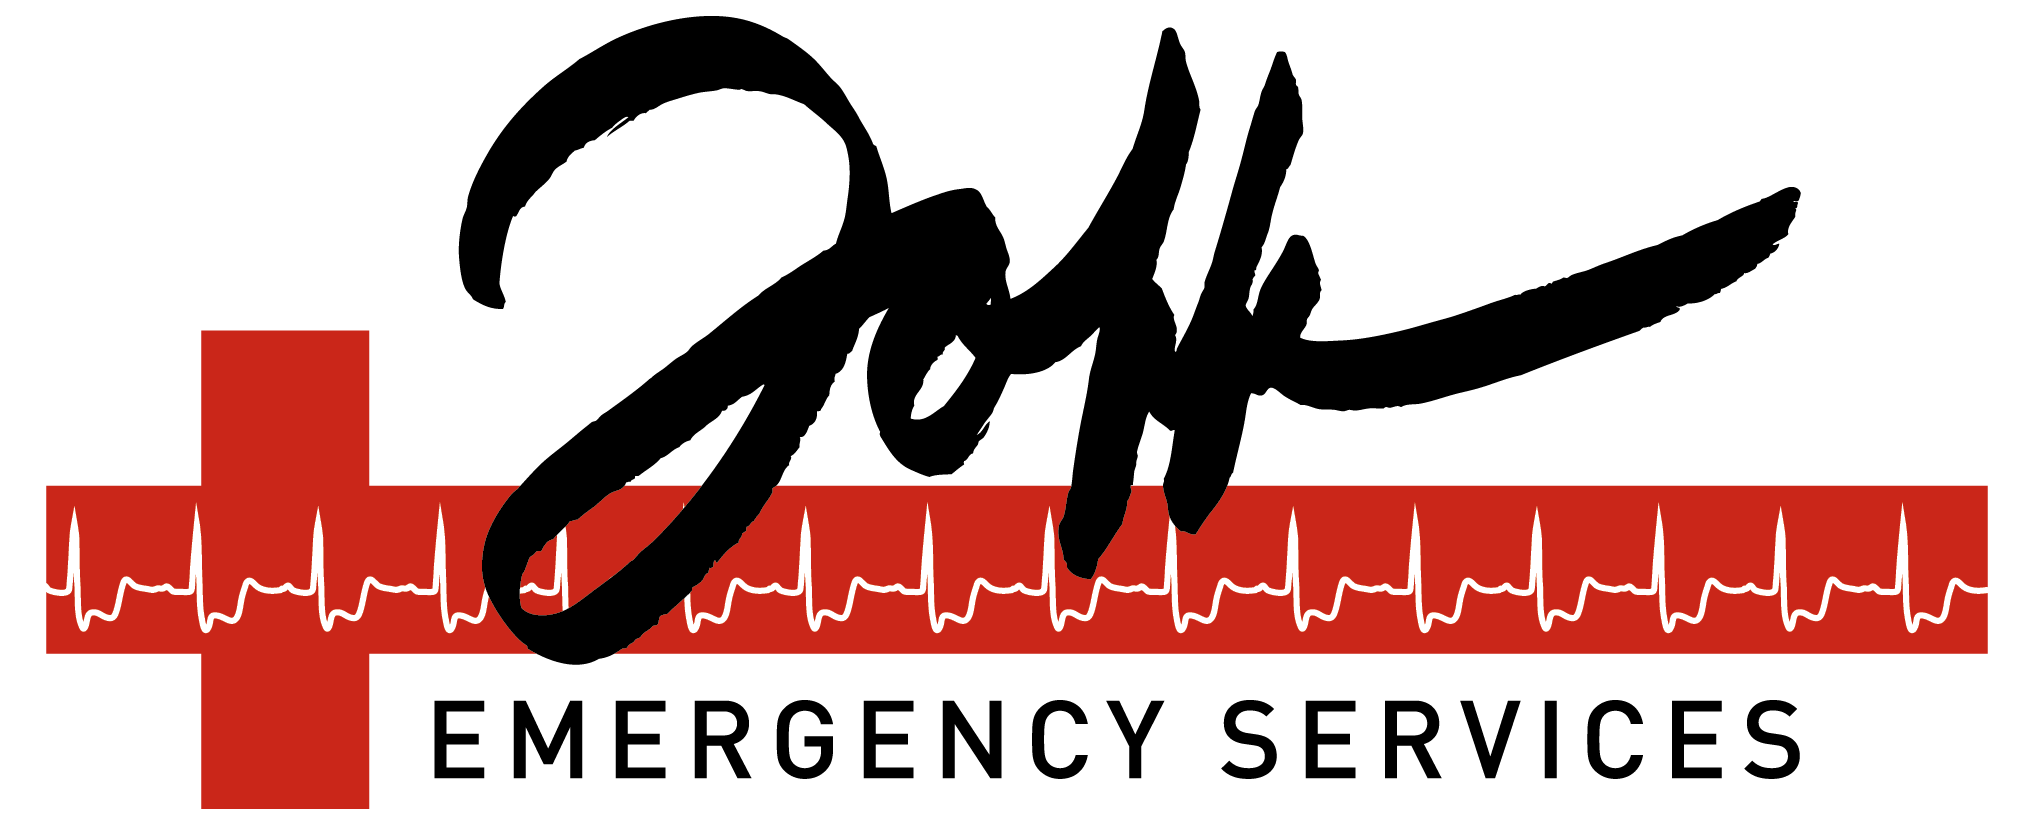 Joffe-Emergency-Services-Logo-01.png